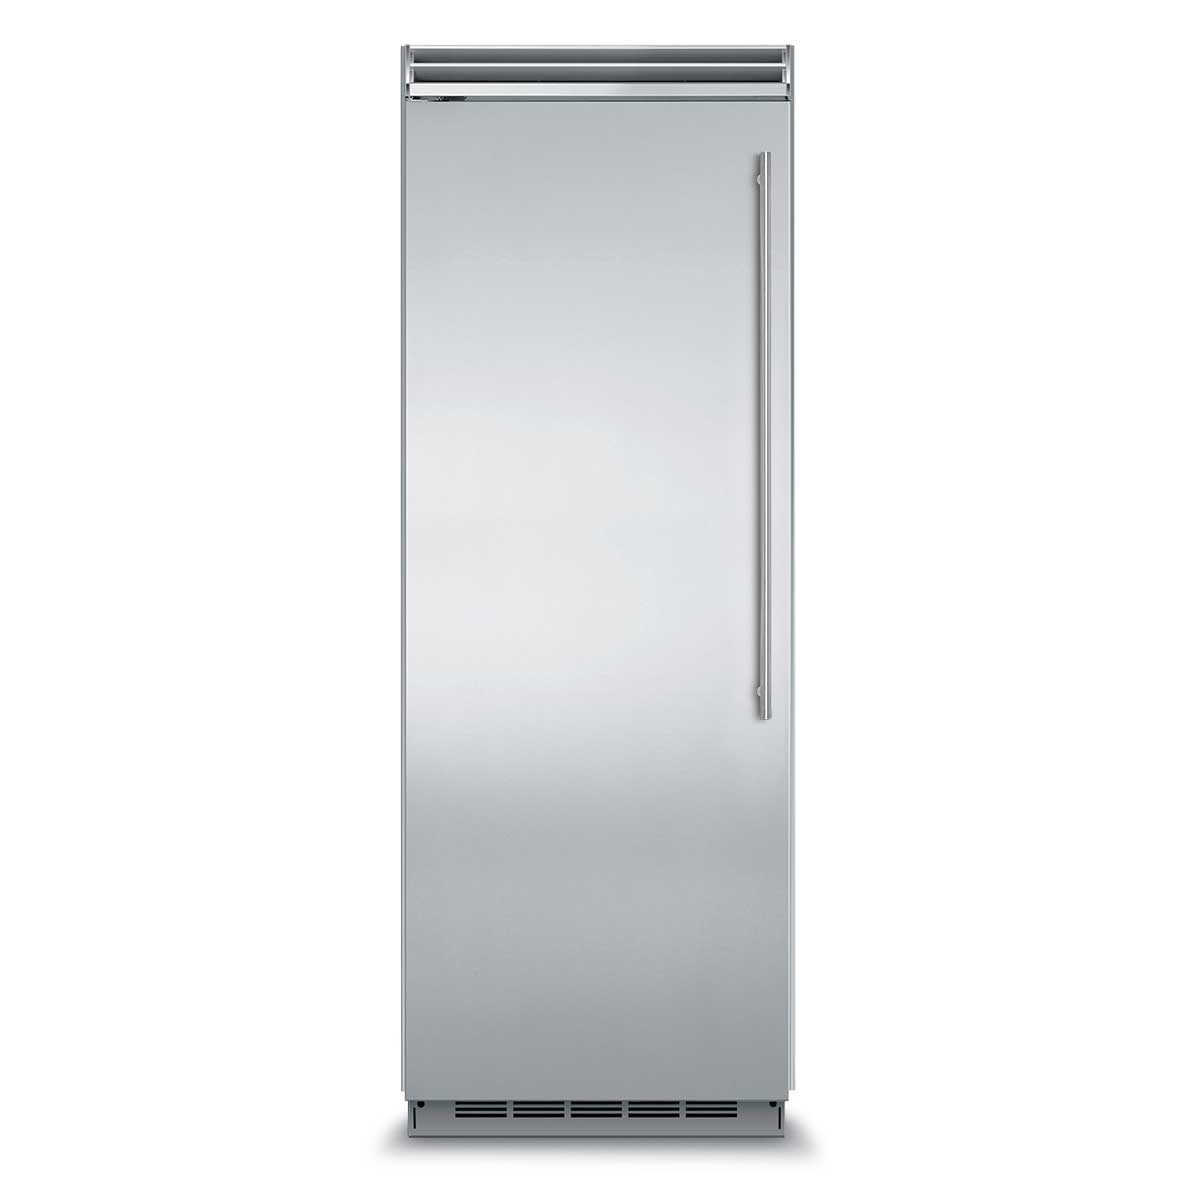 "Marvel  Marvel Professional Built-In 30"" All Refrigerator- Solid Stainless Steel Door   Right Hinge, Slim Designer Handle"